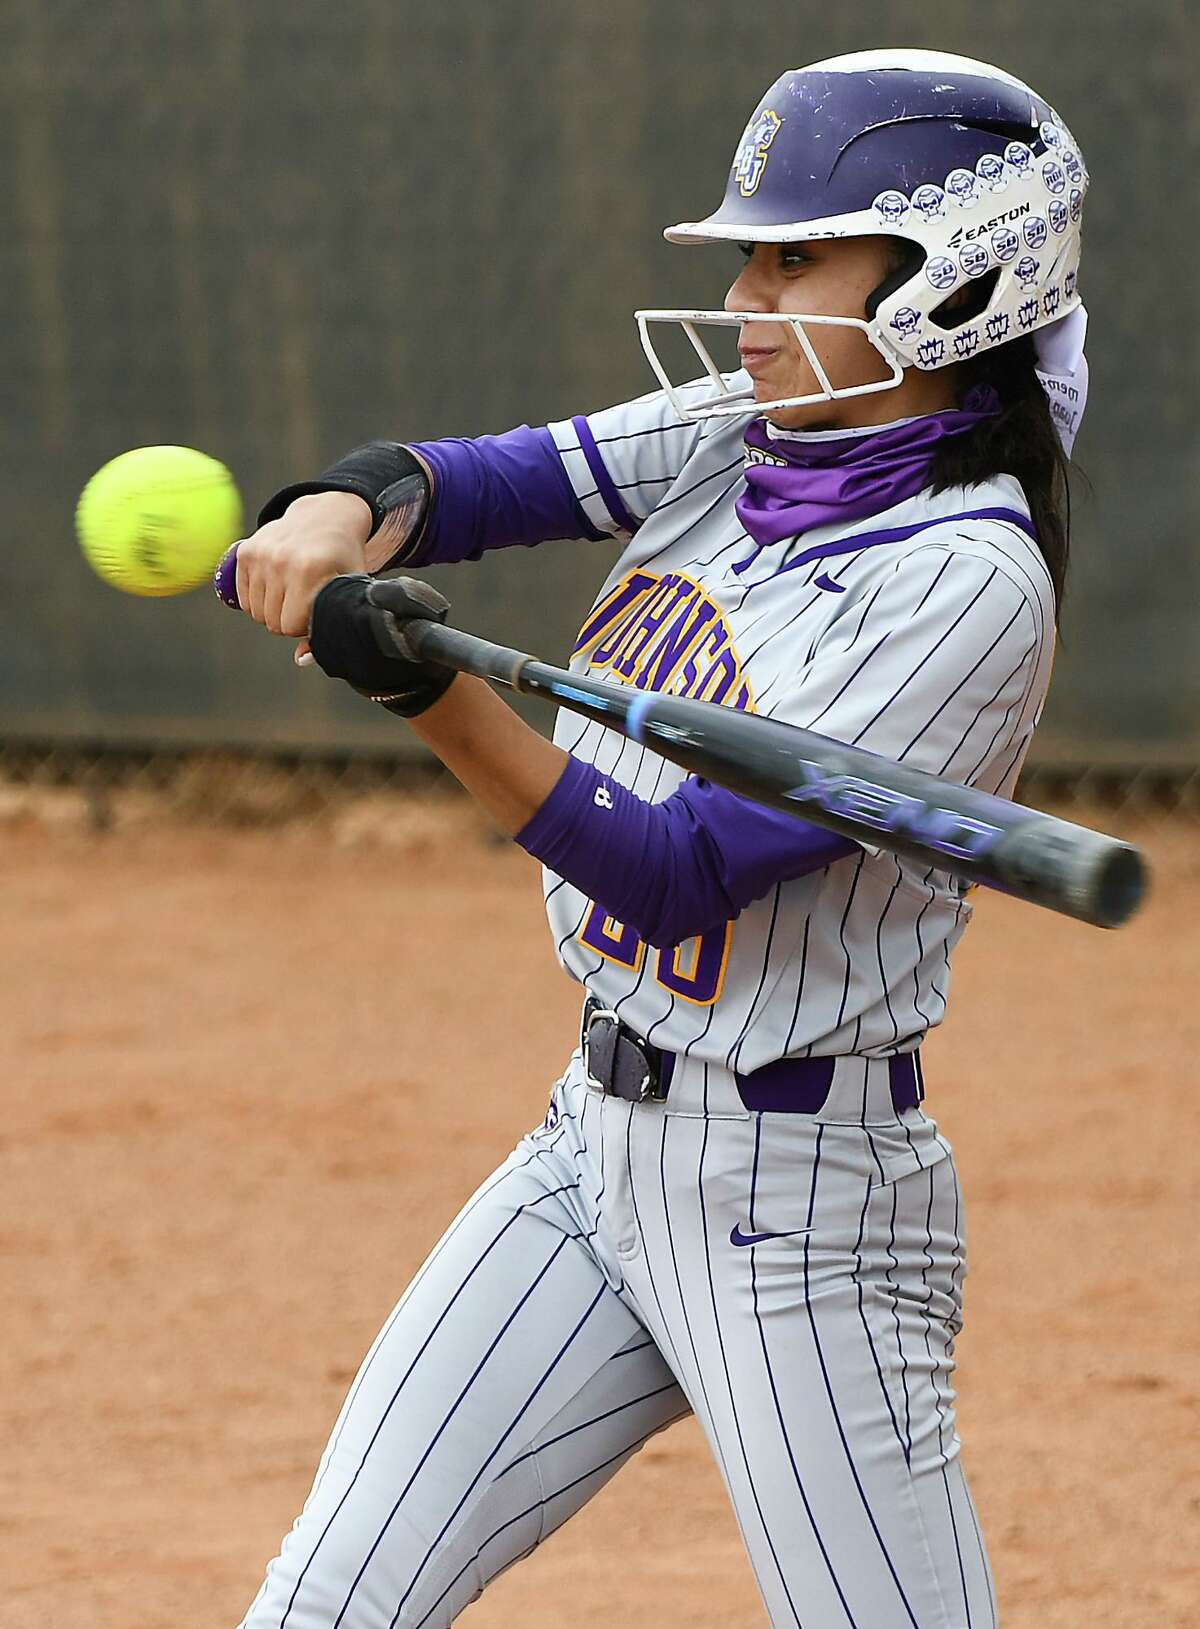 Valerie Loyola hit a walk-off single Tuesday as LBJ won 7-6 over United at the SAC.